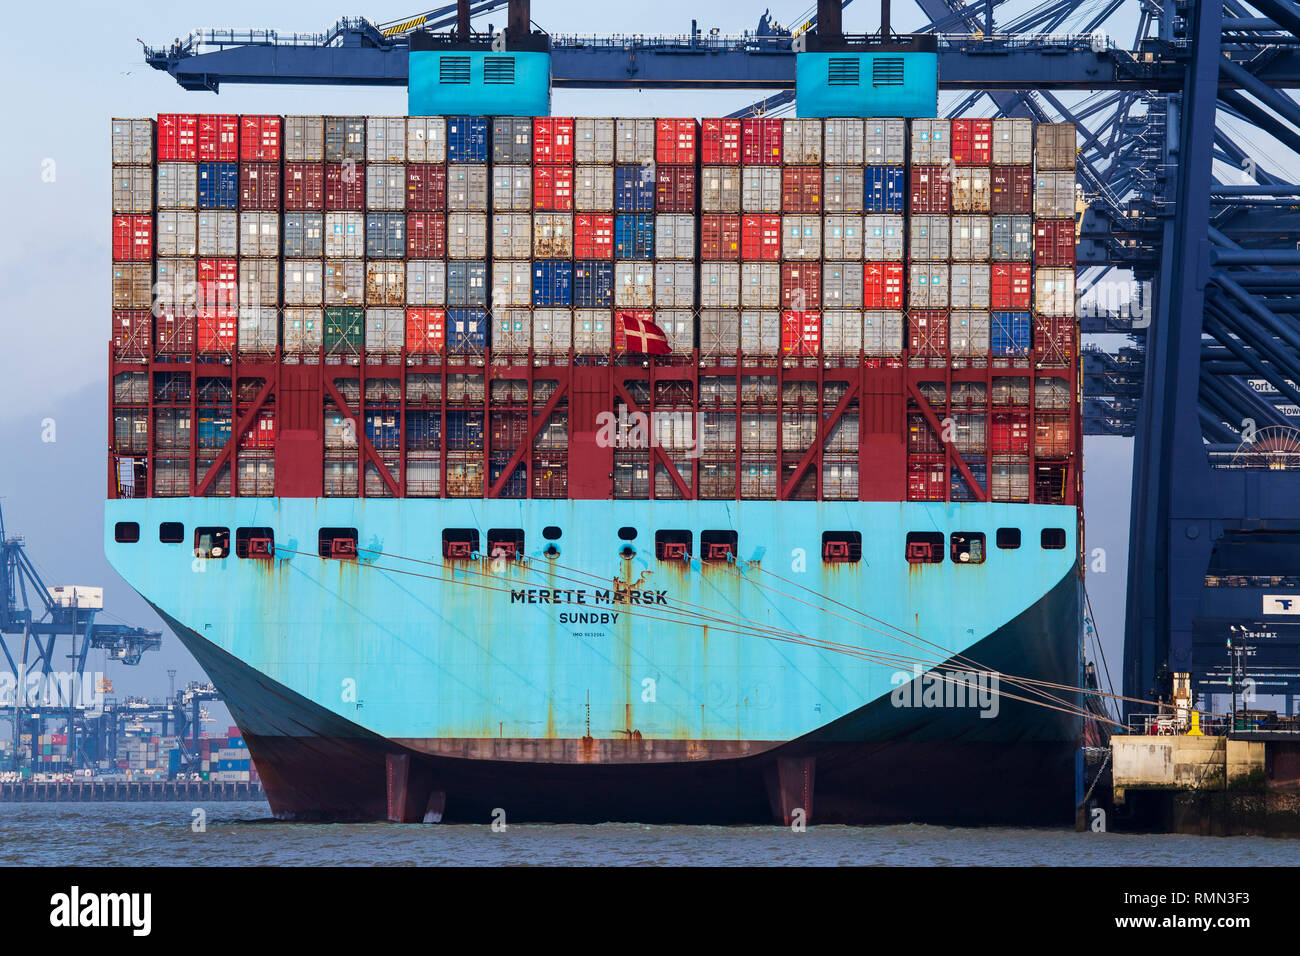 Maersk Shipping Container Ship at Port of Felixstowe Viewed from the Stern - Stock Image